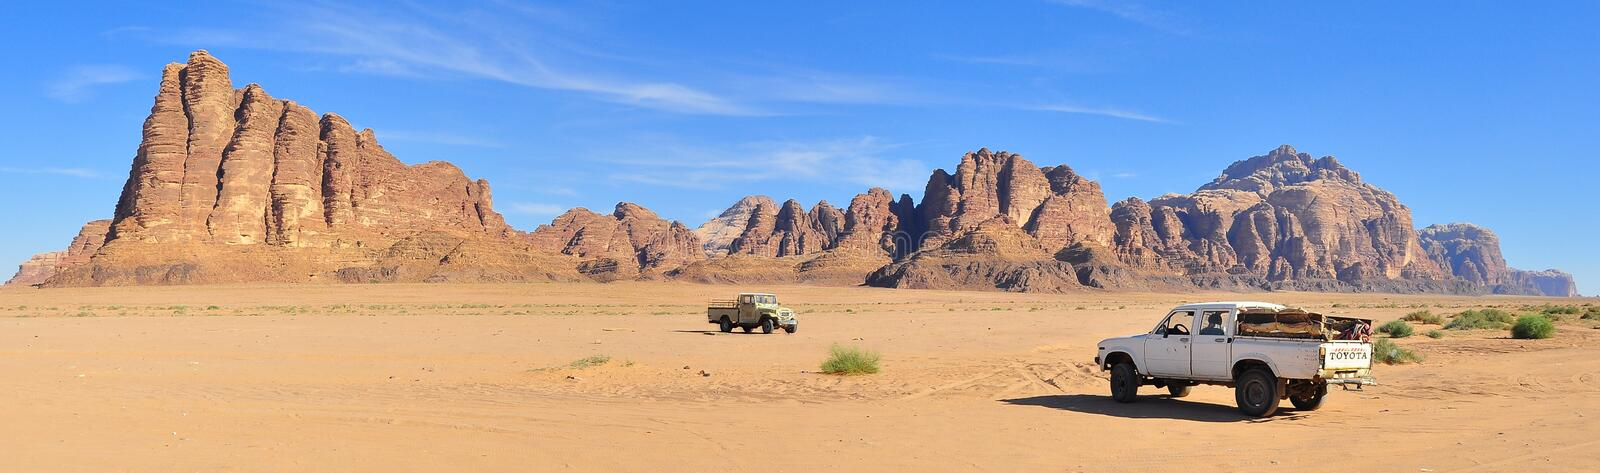 Wadi Rum royalty free stock images